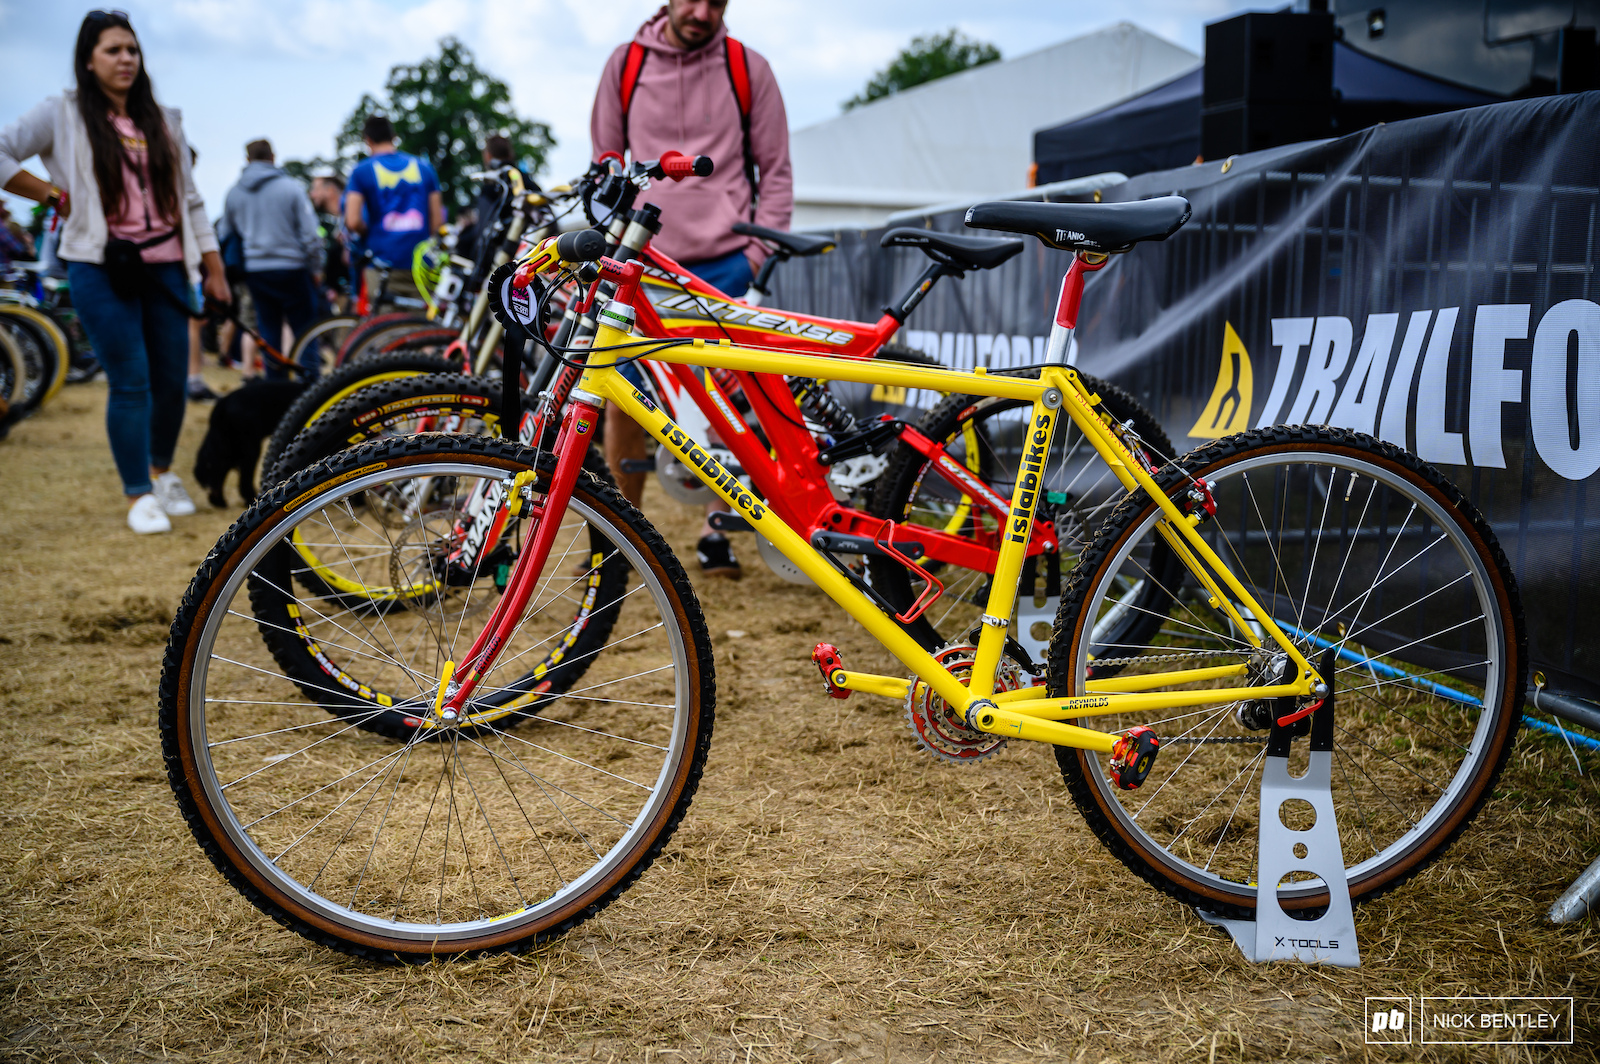 A top 10 for this Islabikes